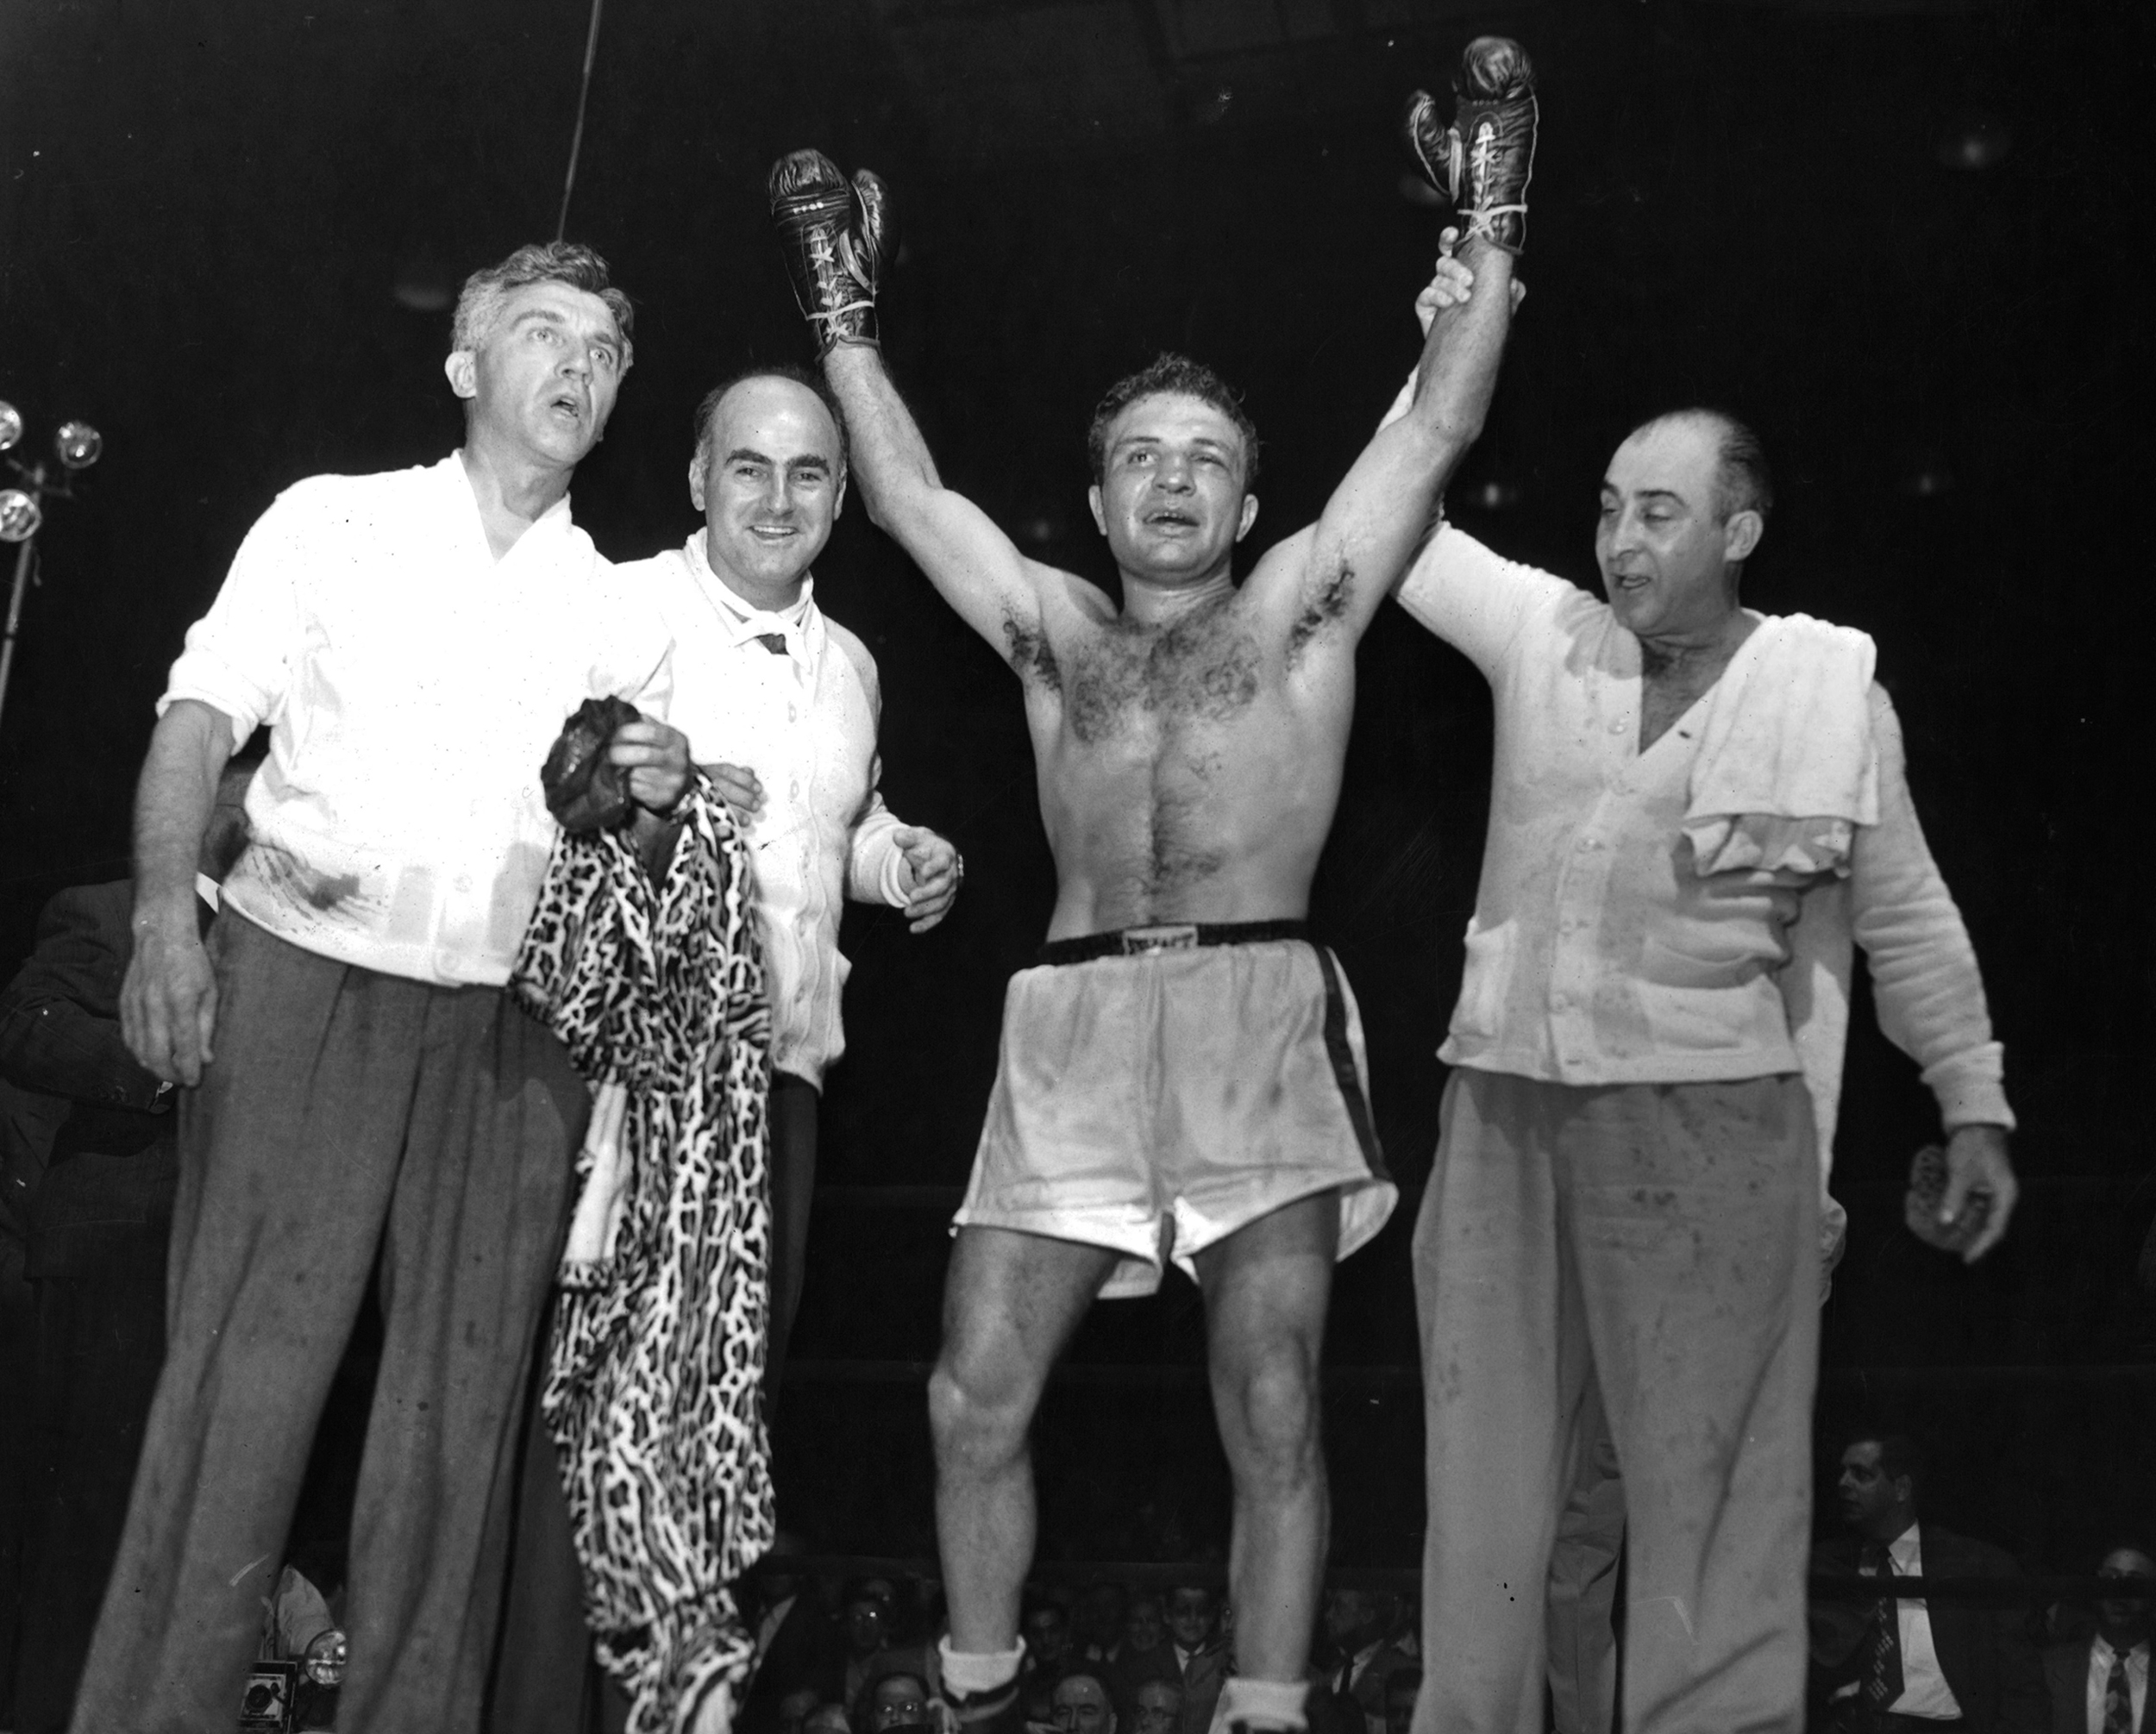 Jake LaMotta, Legendary Boxer Immortalized in 'Raging Bull